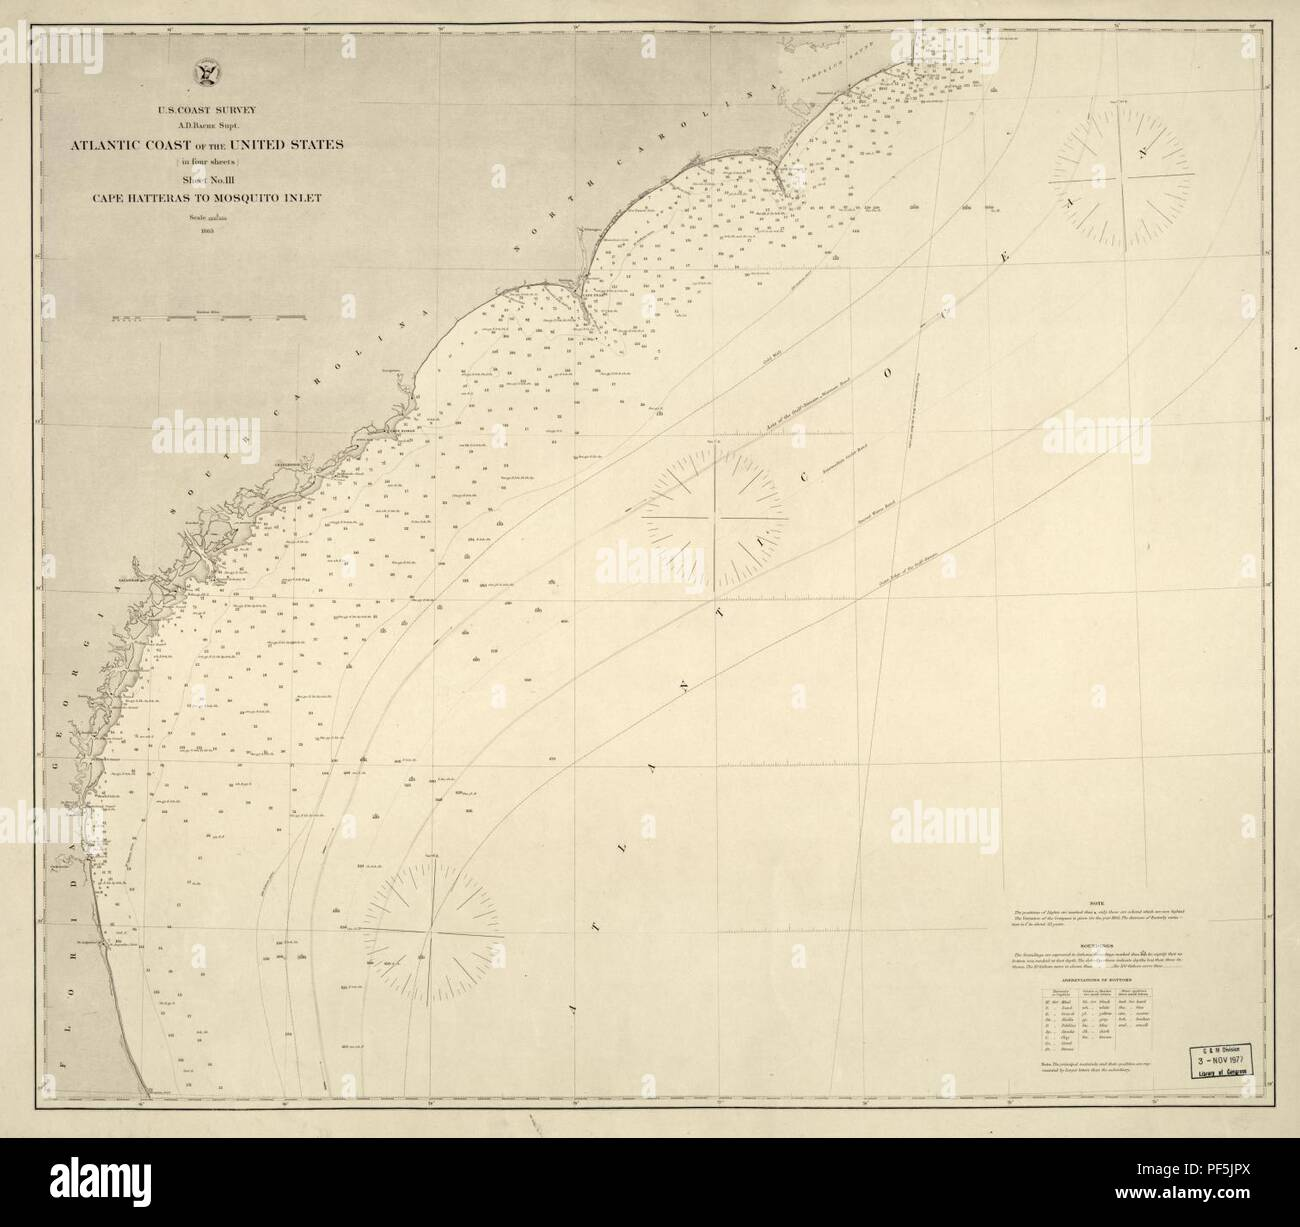 Atlantic coast of the United States (in four sheets) - sheet no. III